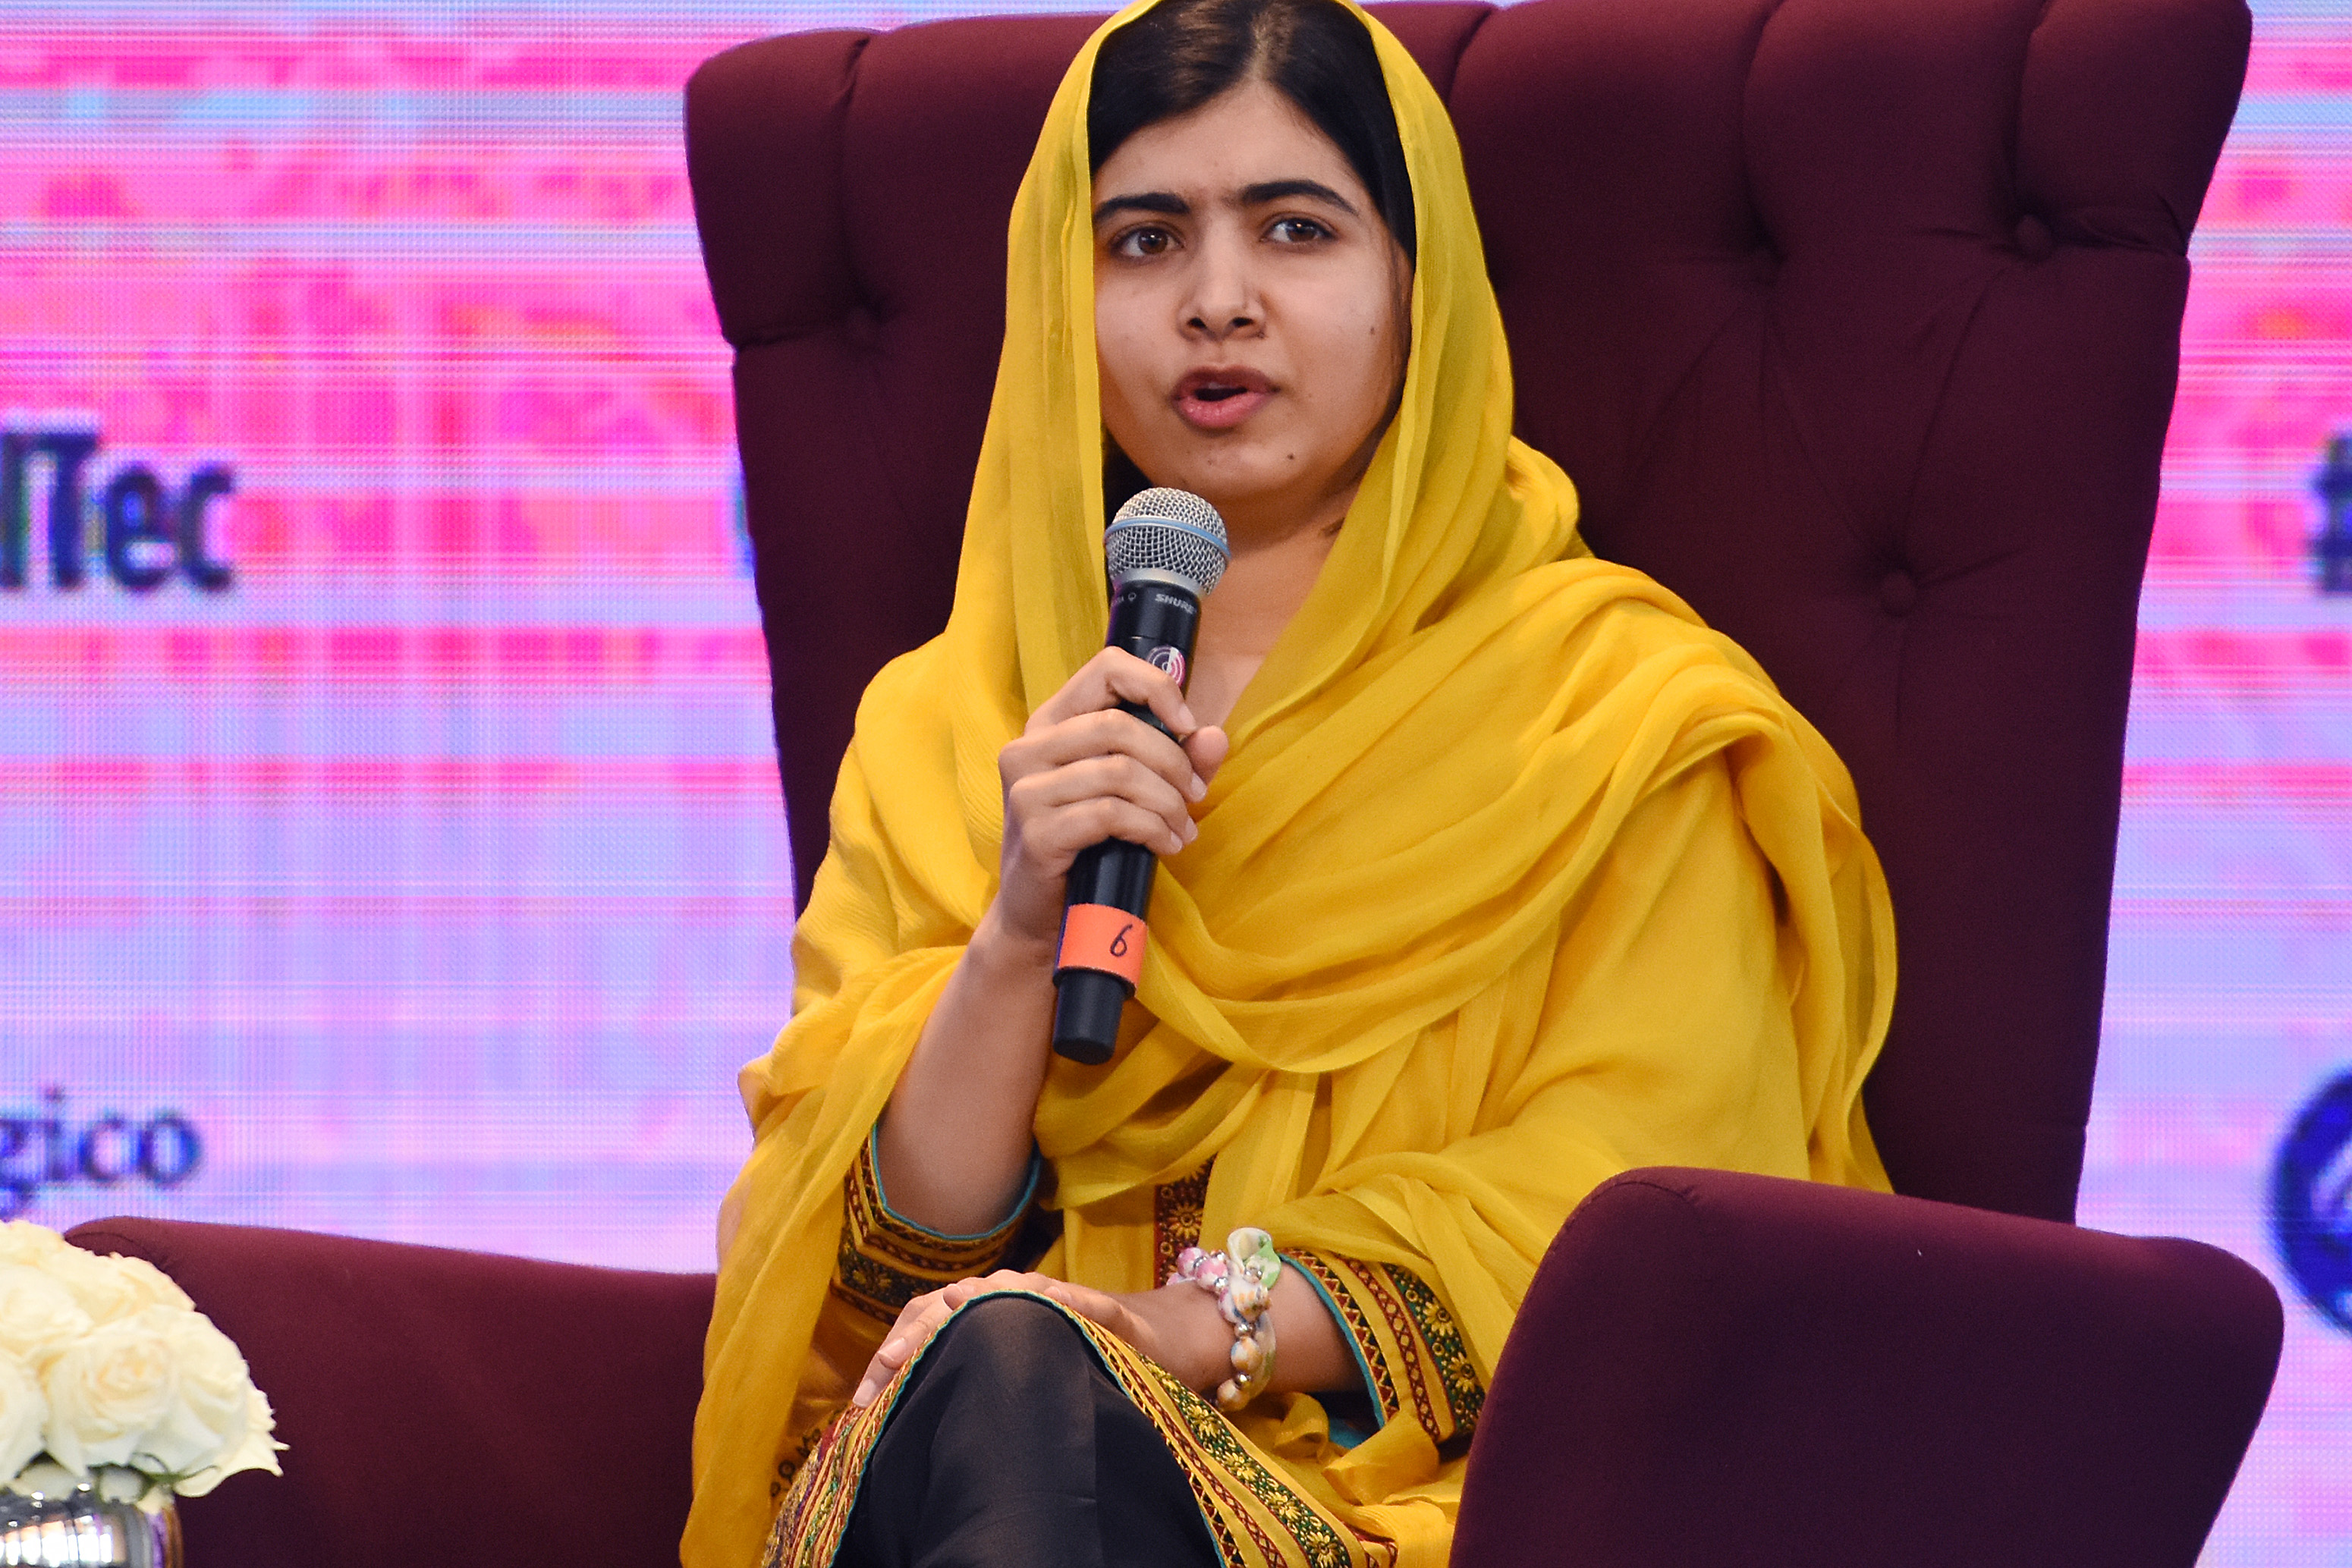 Education activist Malala Yousafzai speaks during a press conference at the Tecnologico de Monterrey University on Aug. 31, 2017 in Mexico City, Mexico.